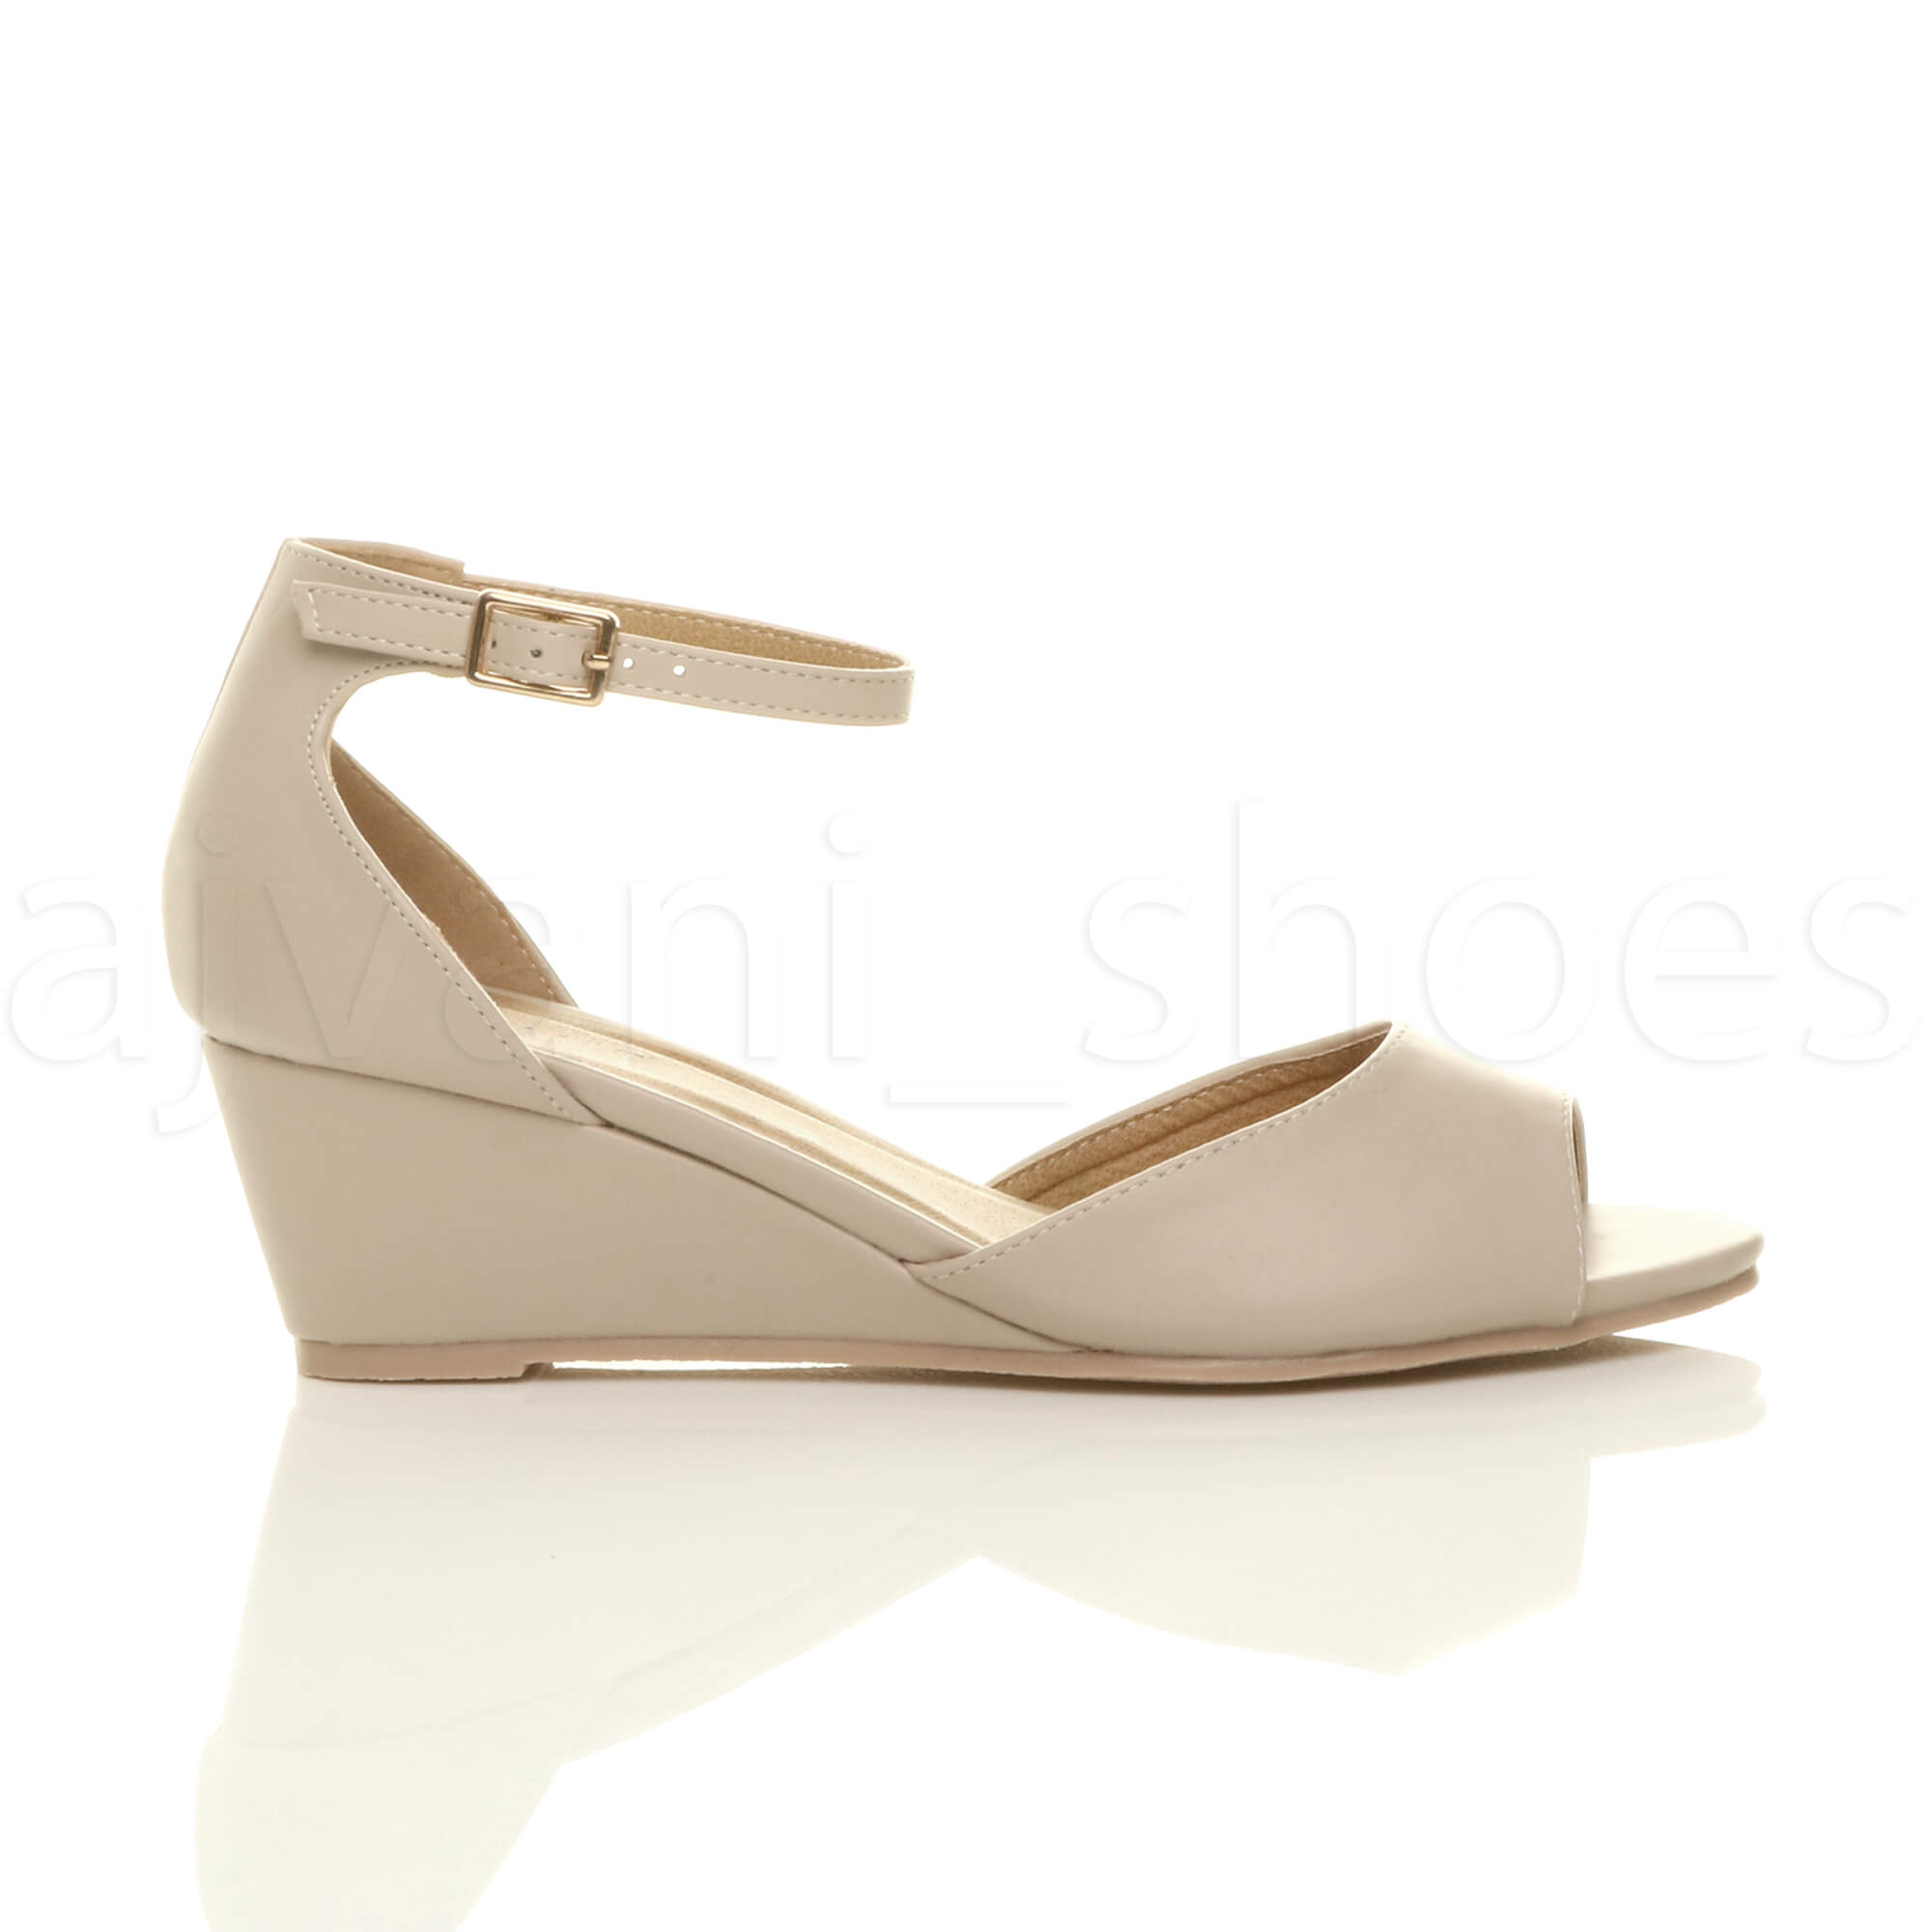 WOMENS-LADIES-LOW-MID-WEDGE-HEEL-ANKLE-STRAP-SMART-CASUAL-EVENING-SANDALS-SIZE thumbnail 91